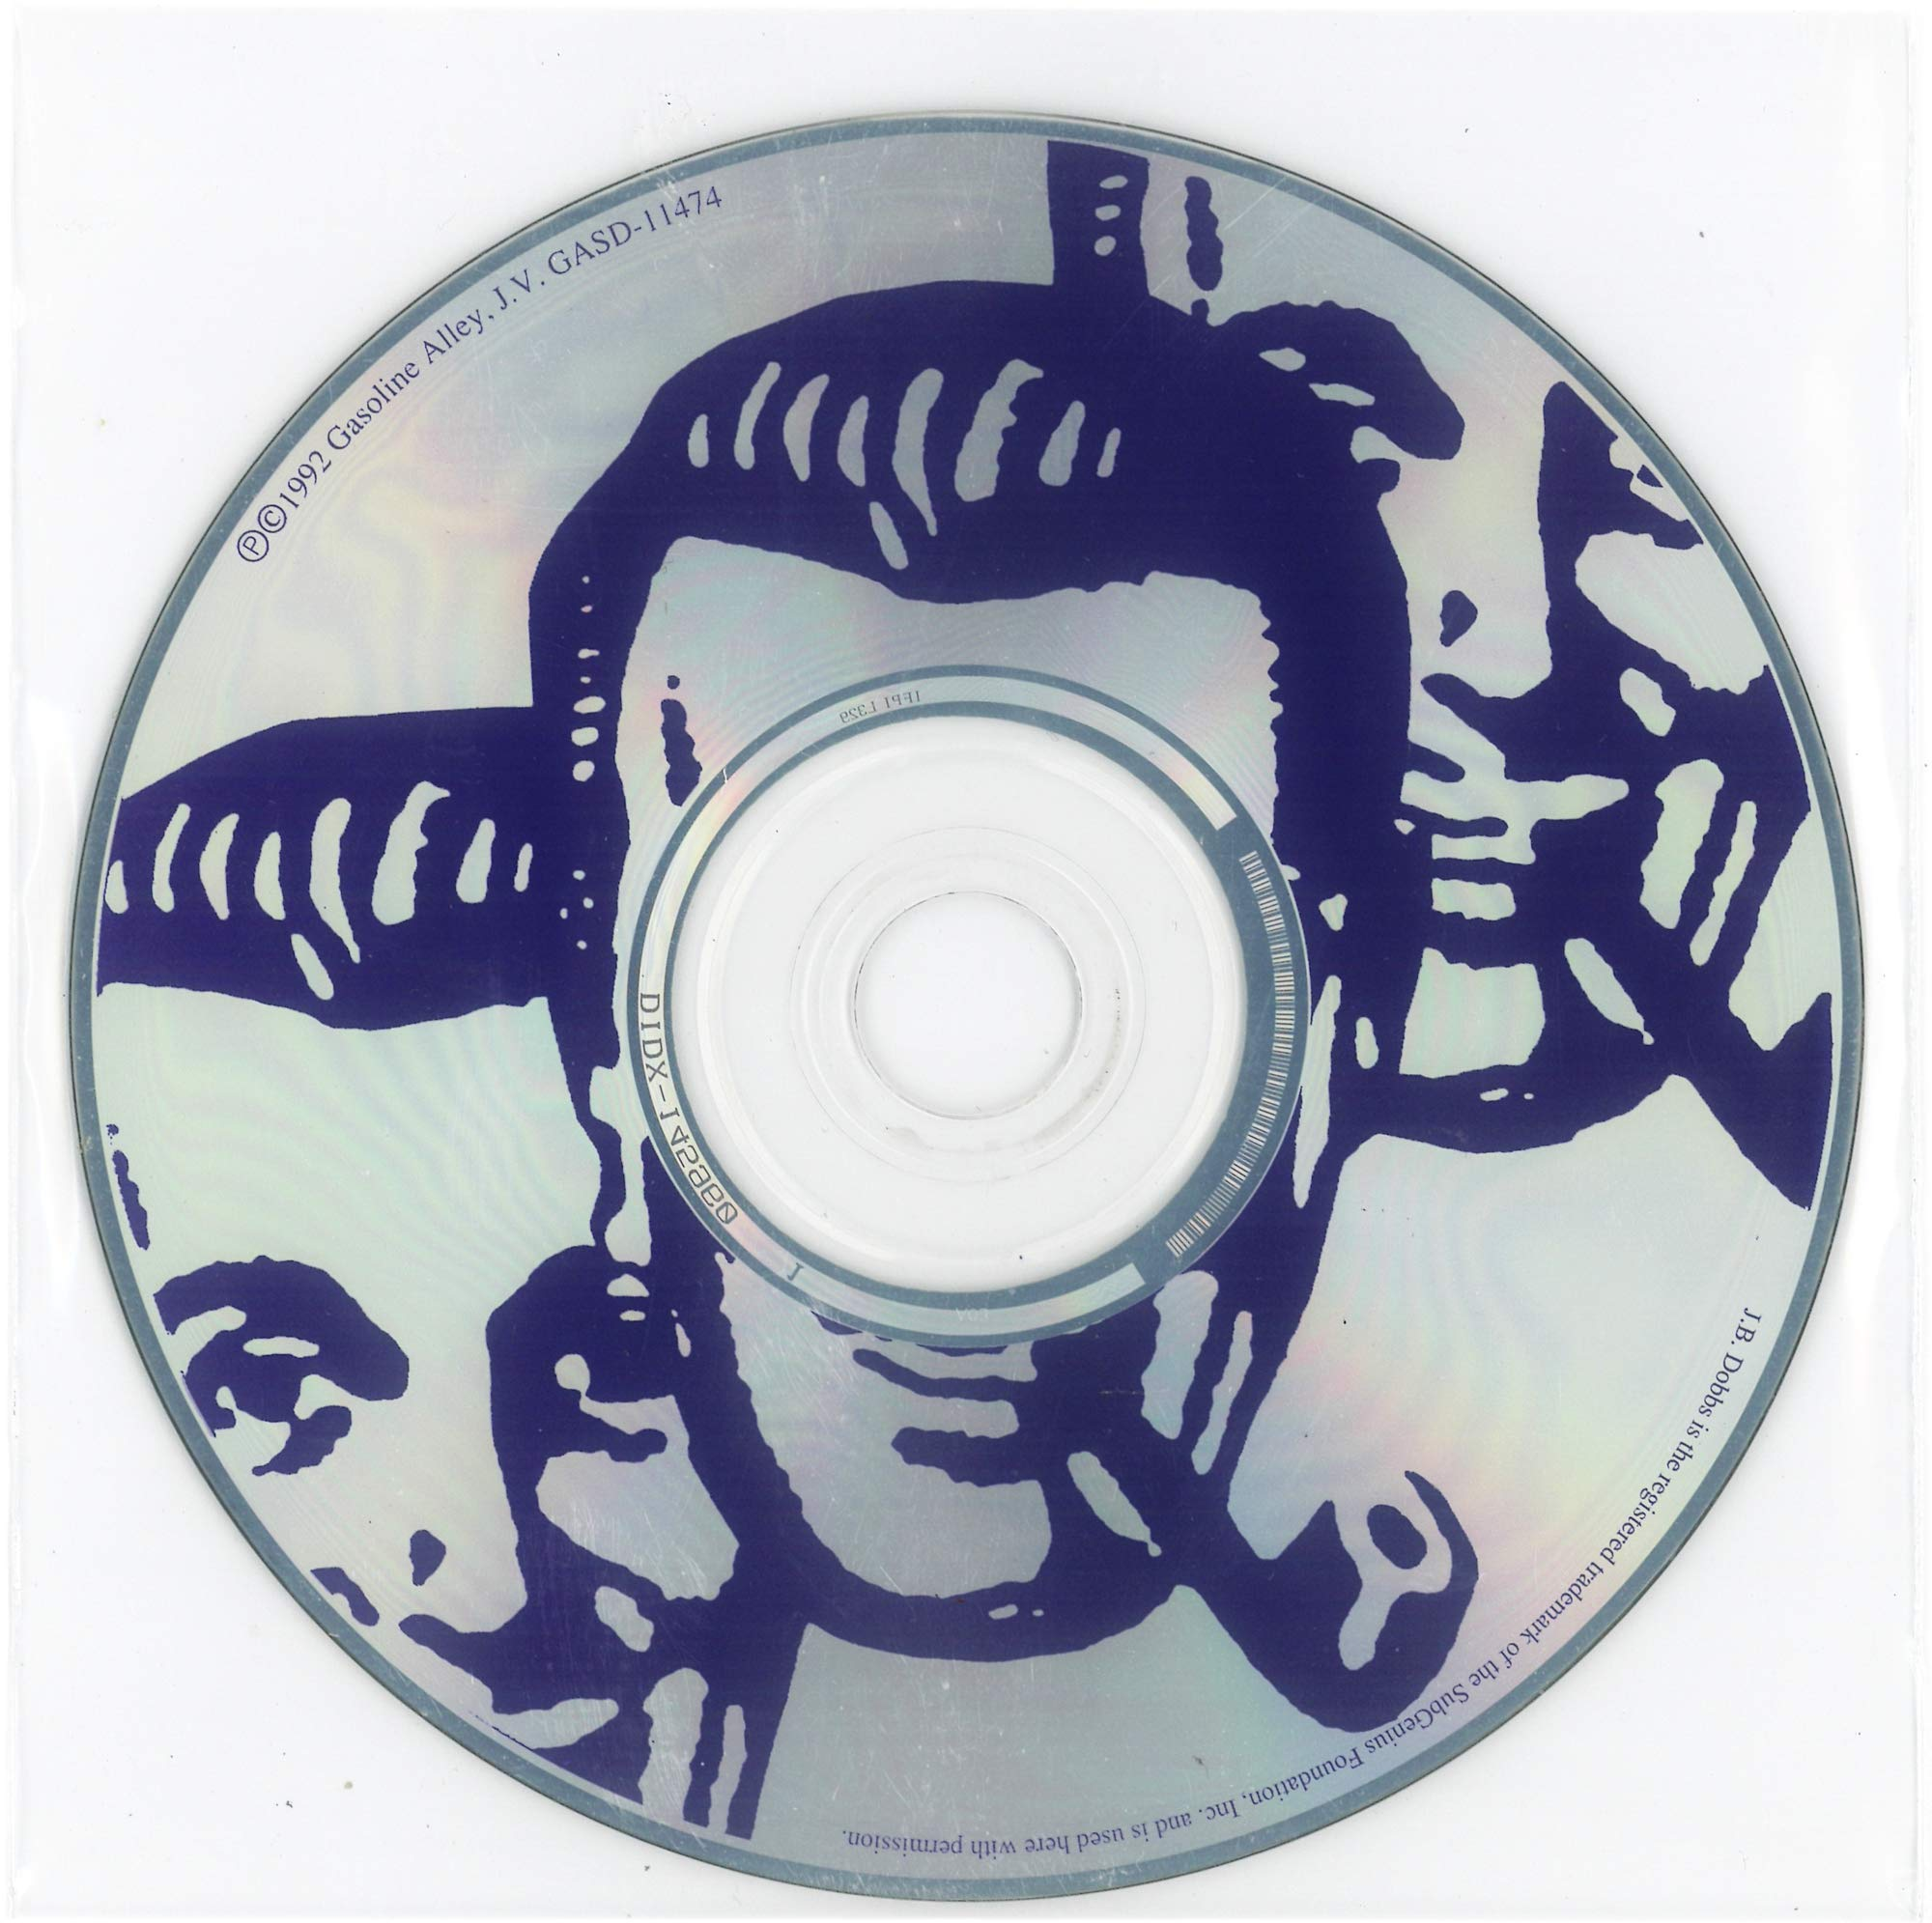 Holds 1 Standard CD Jewel Box /& Only Seals Once Great to Tell if CDs Have Been Tampered with! Square Deal Recordings /& Supplies 100 Polyclear Sealable Plastic CD Sleeves #CDSP02SS